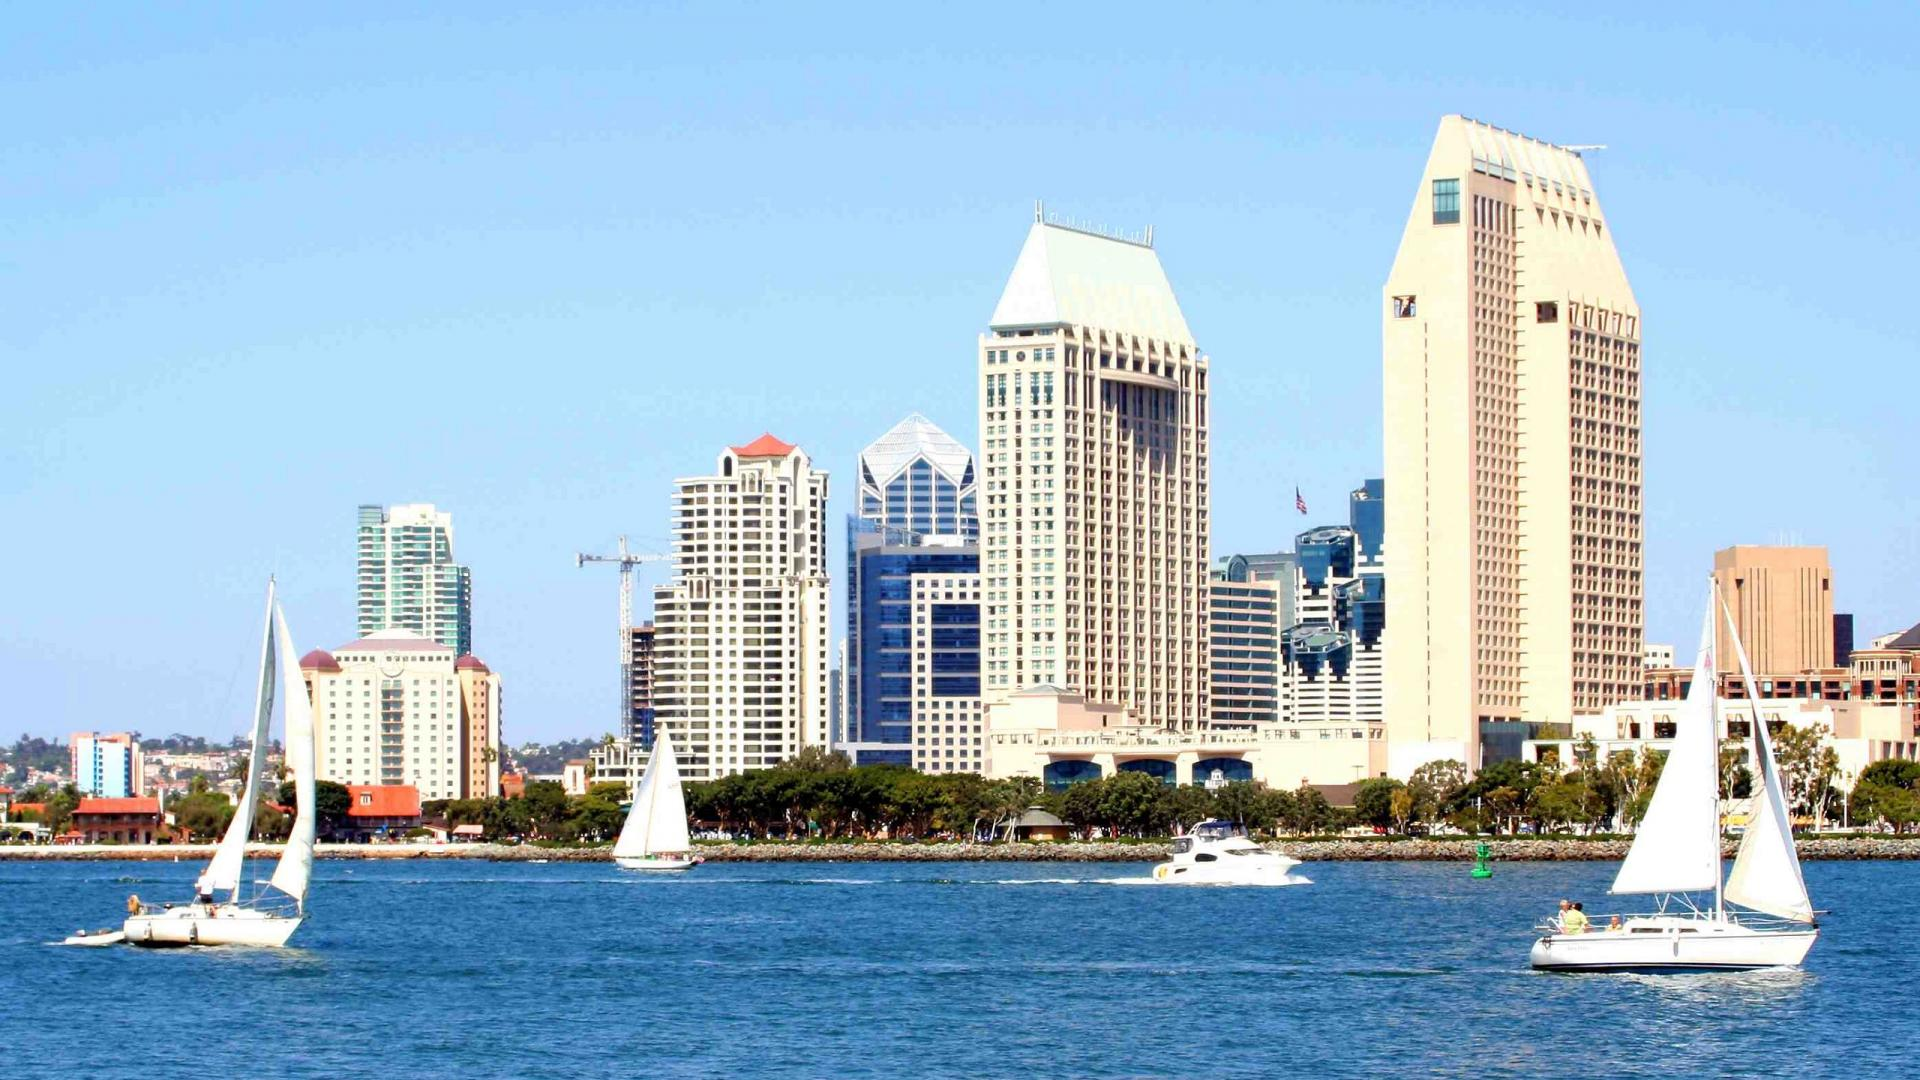 san diego Wallpaper High definition Wallpapers Desktop Backgrounds 1920x1080